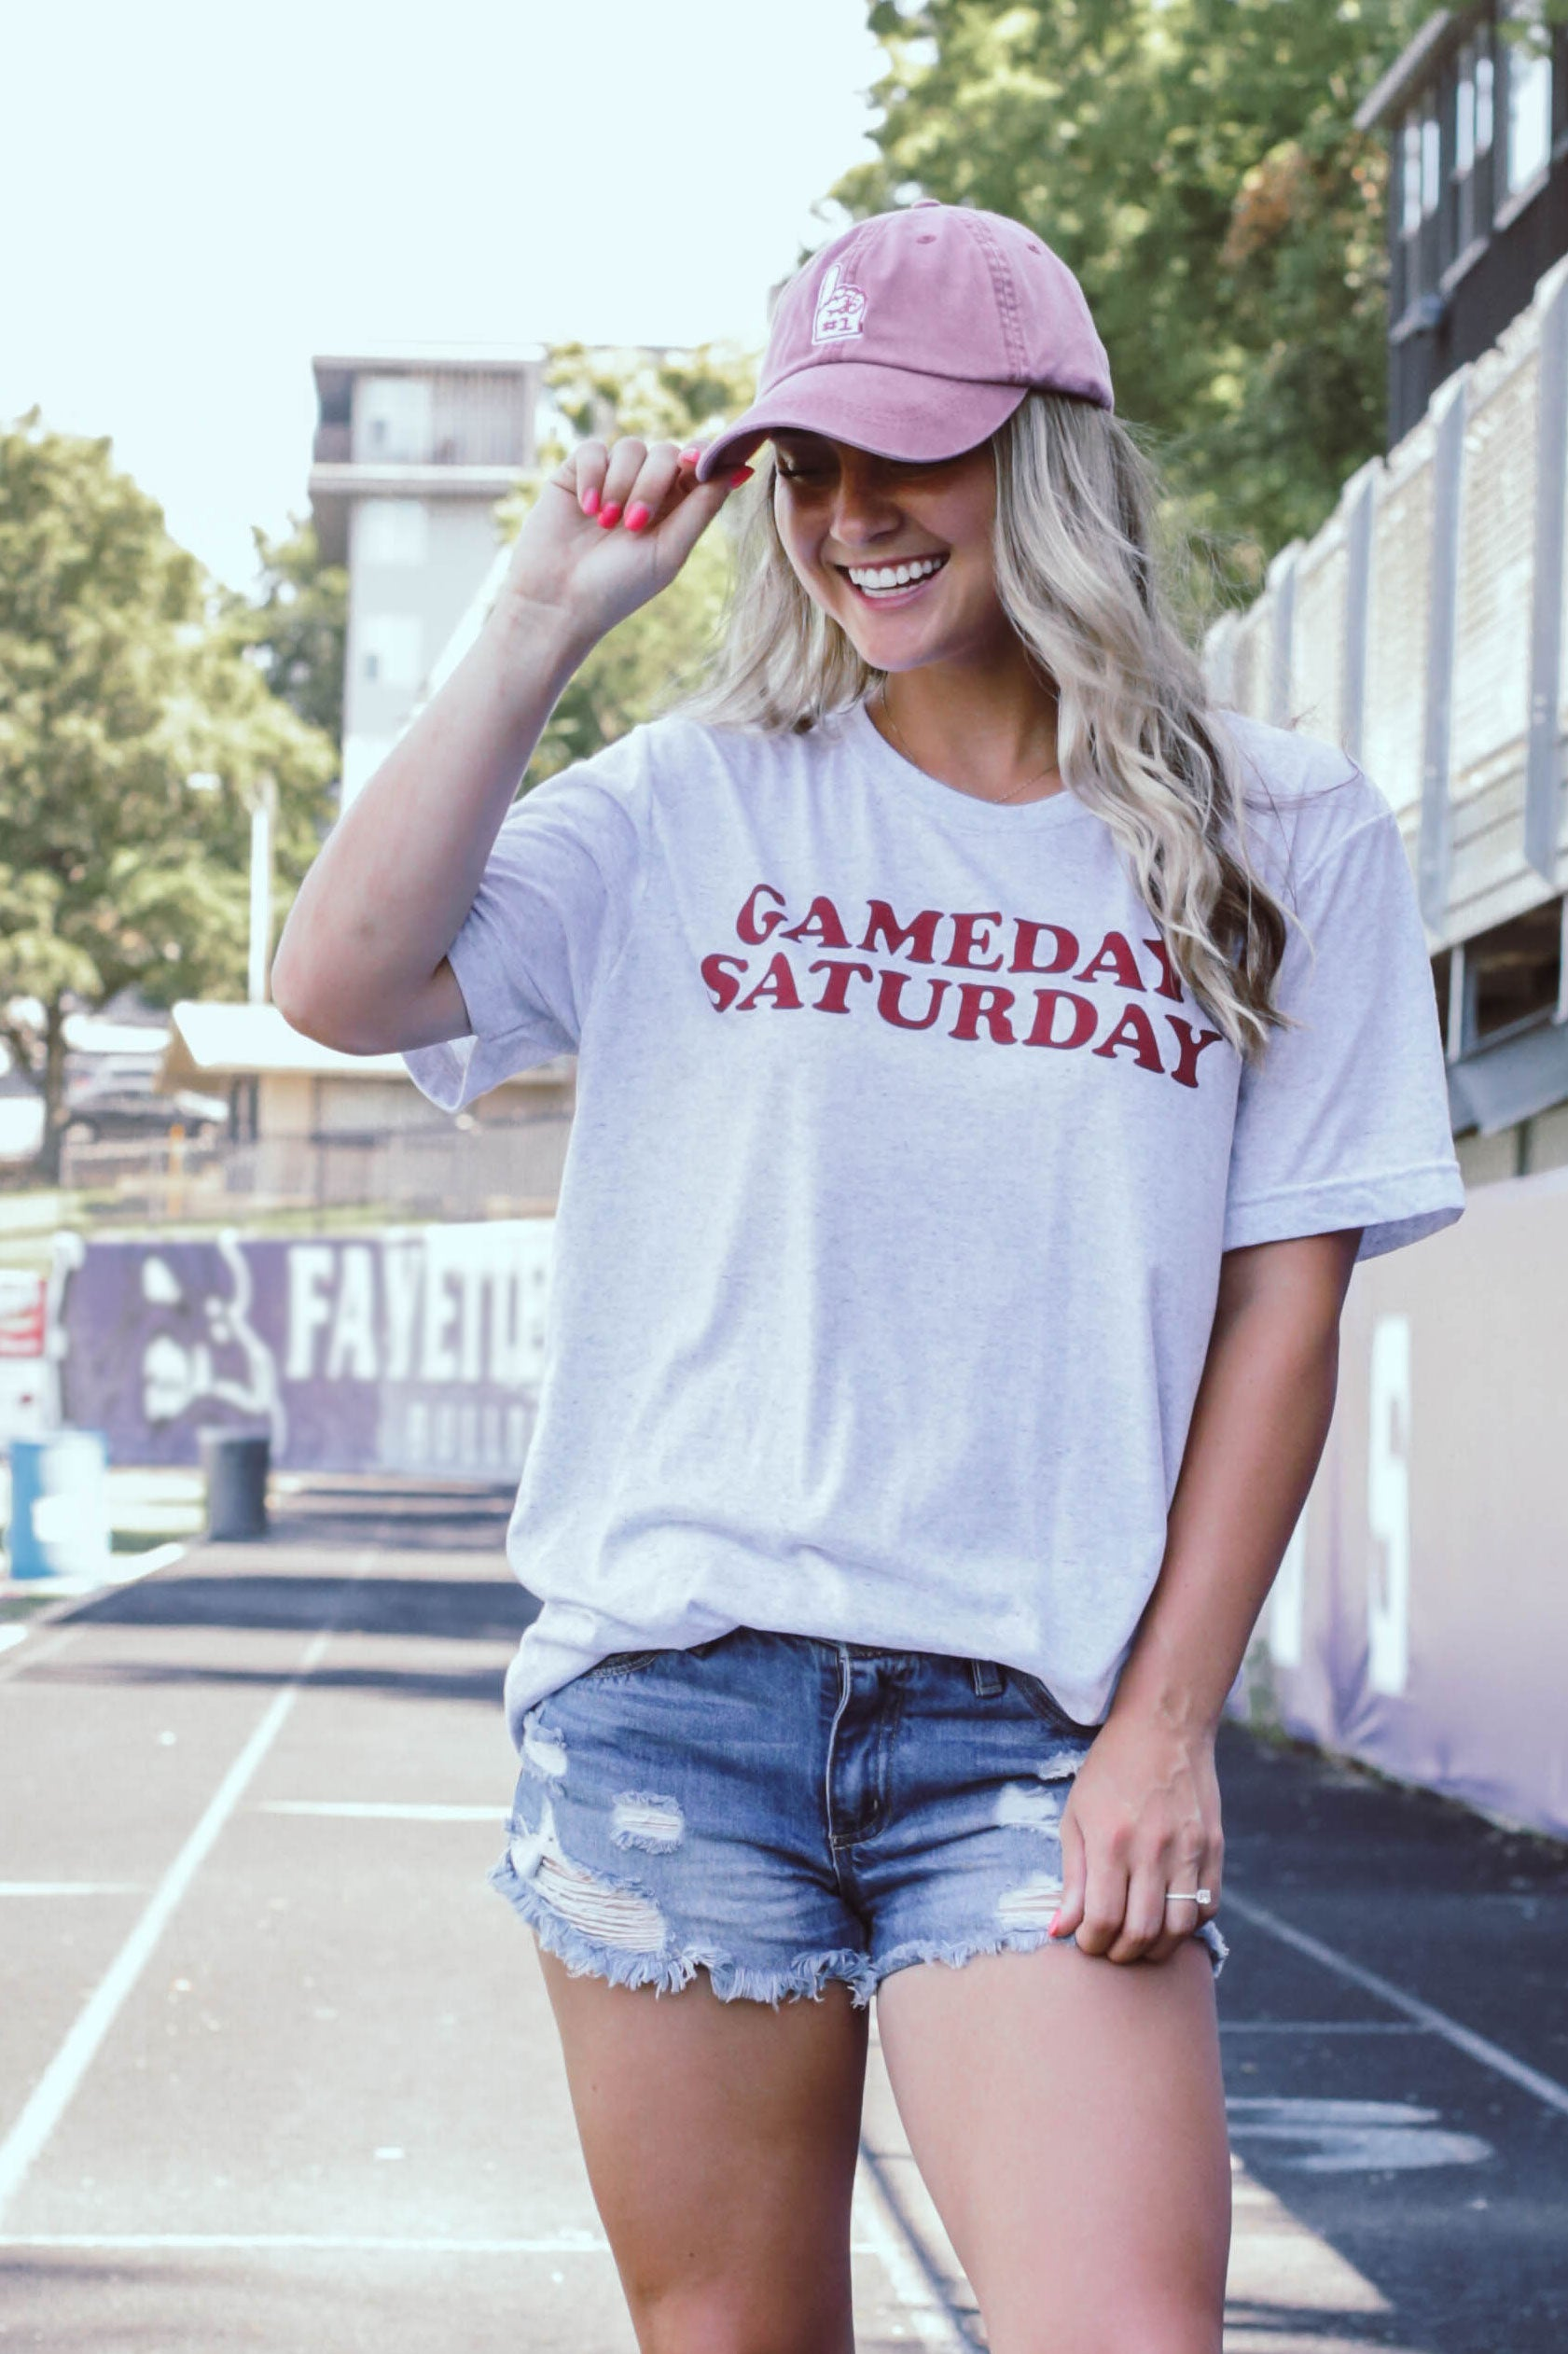 Gameday Saturday T-Shirt